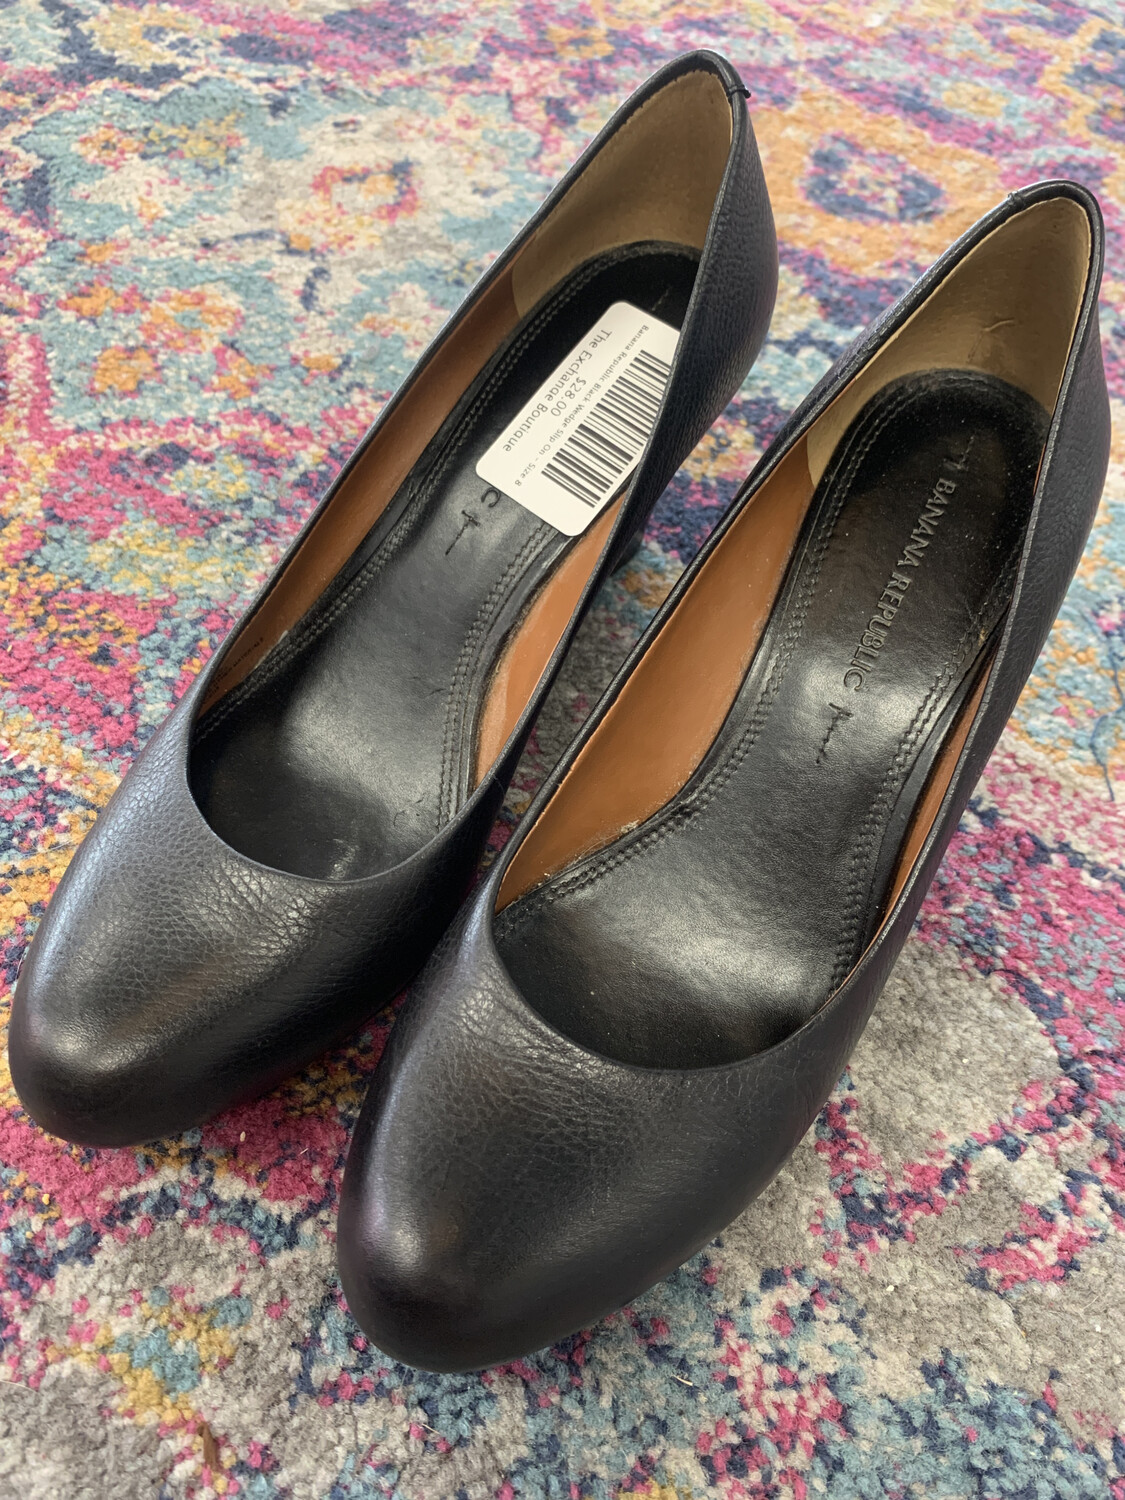 Banana Republic Black Wedge Slip On - Size 8